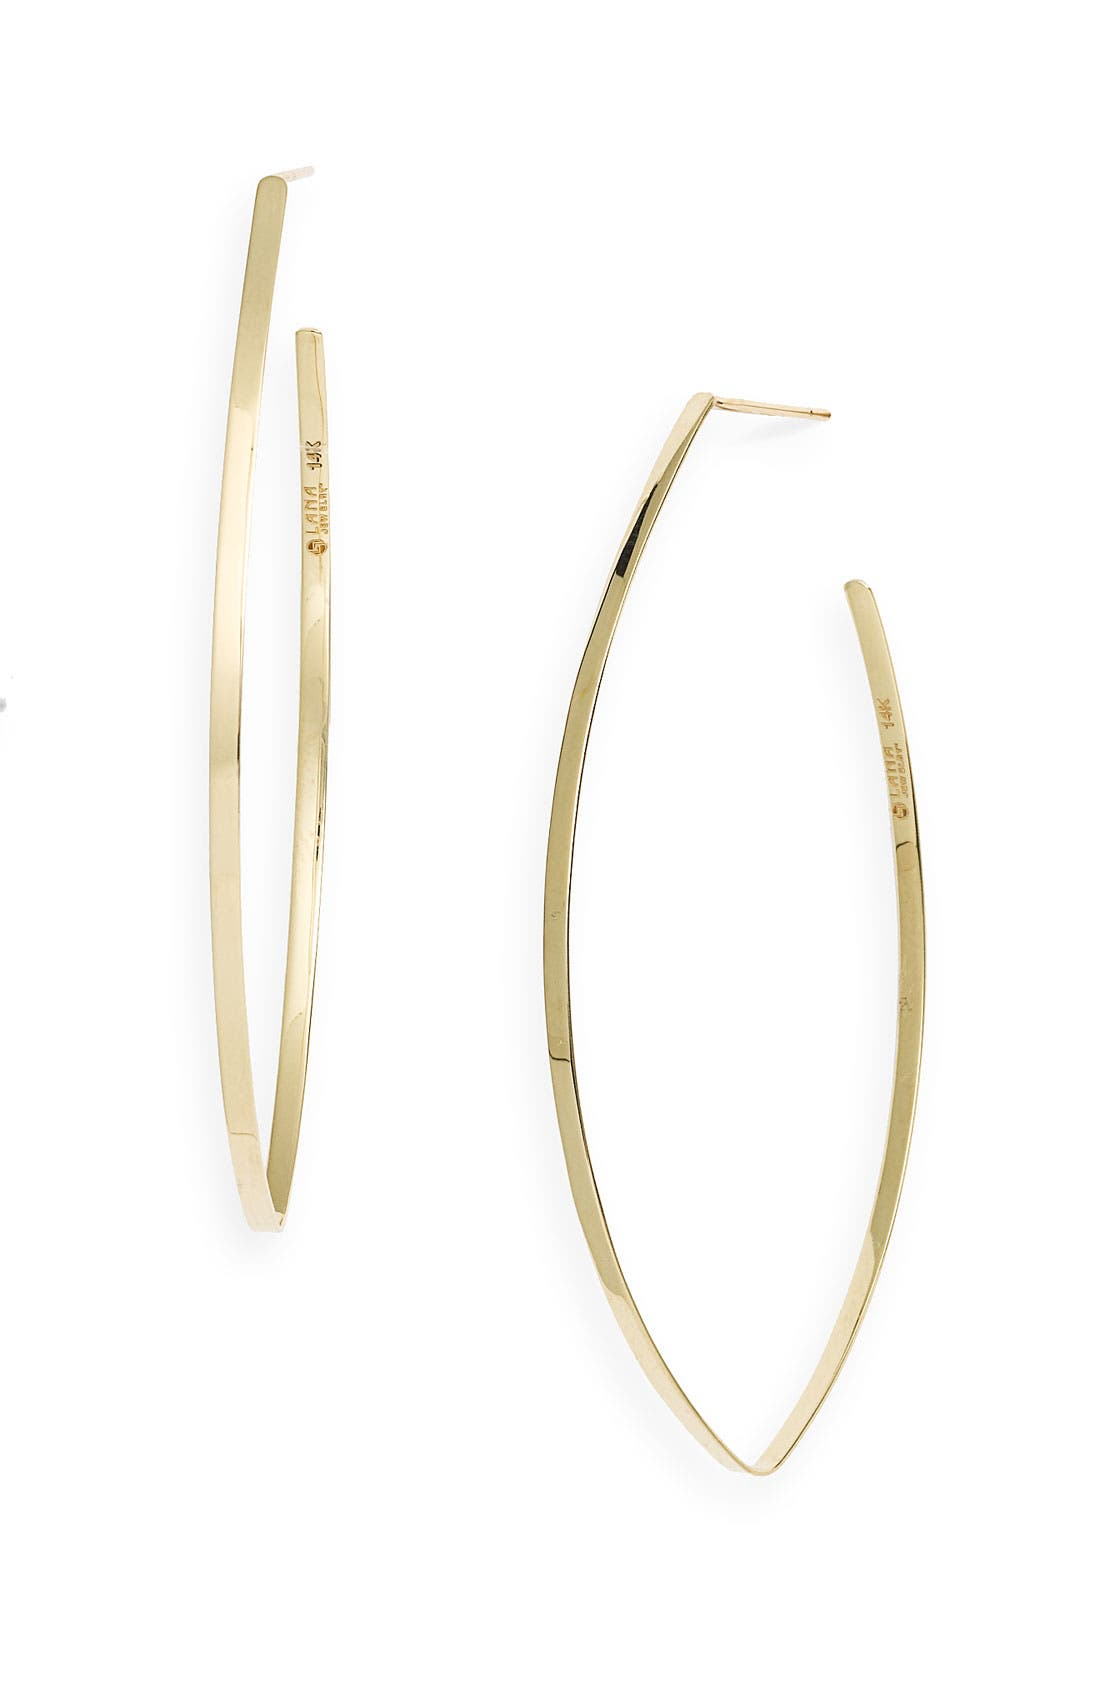 Main Image - Lana Jewelry 'Small Blake' Earrings